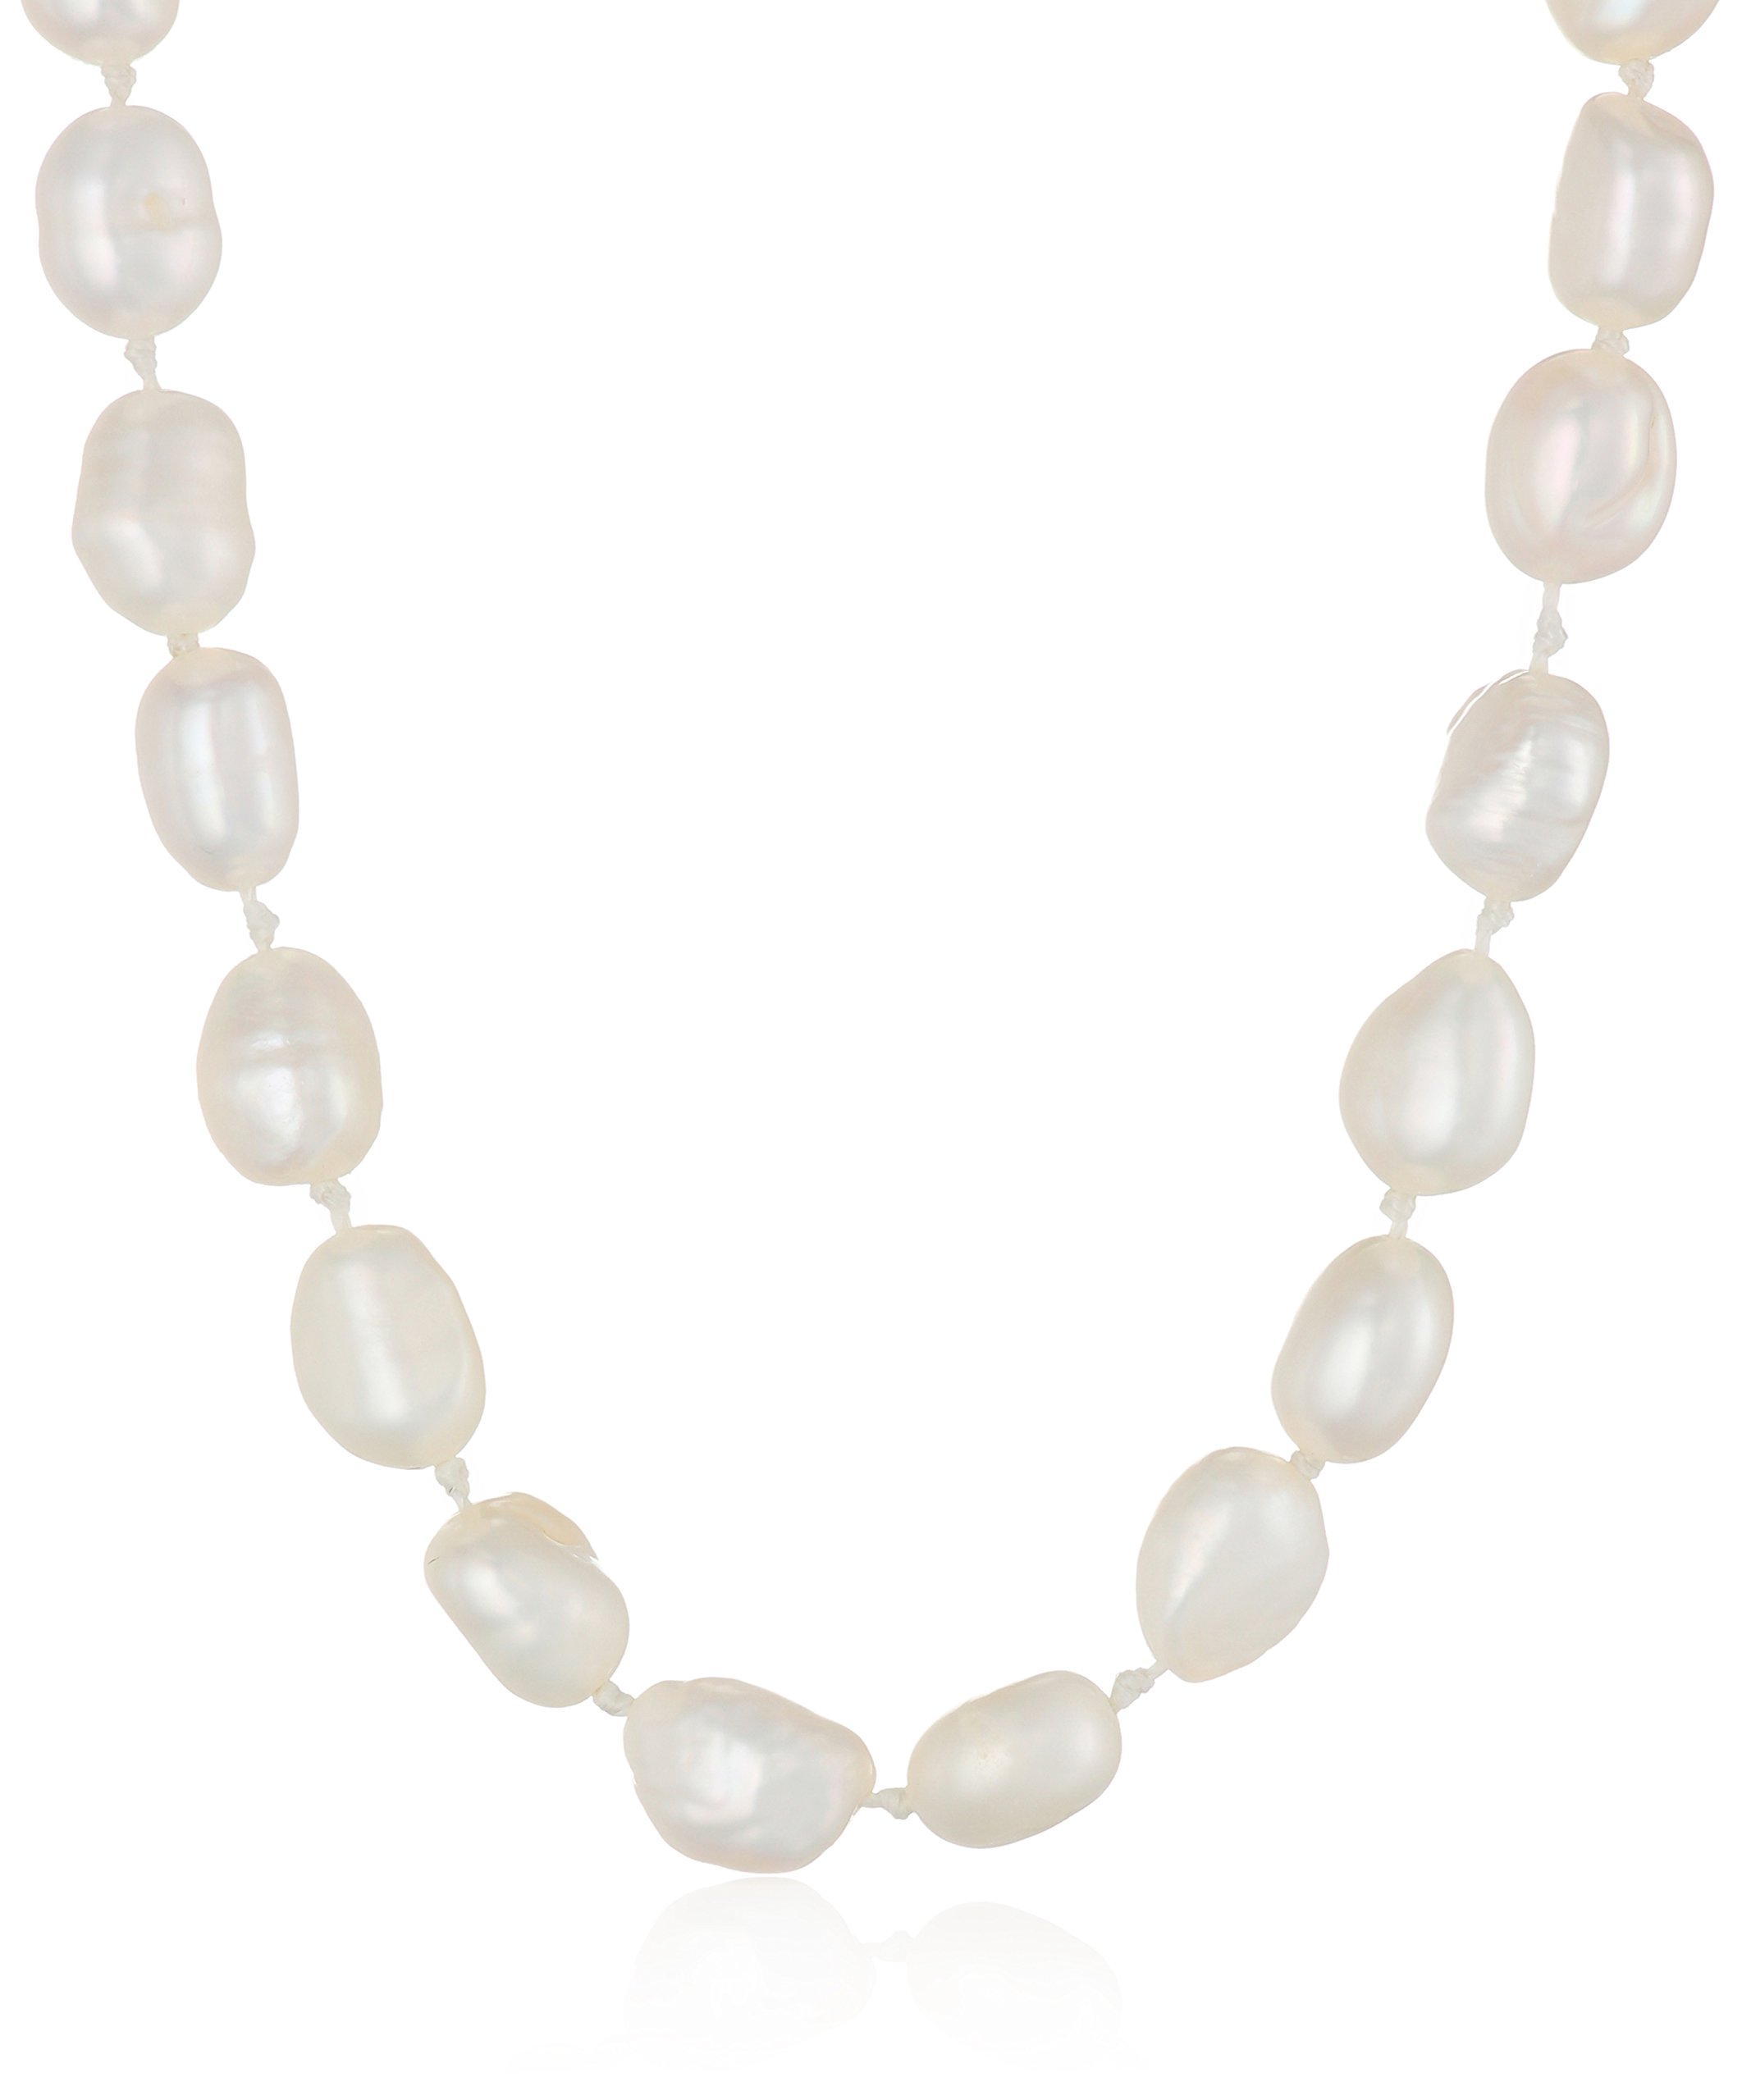 Sterling Silver 5-6mm White Baroque Freshwater Cultured Pearl Necklace 18''